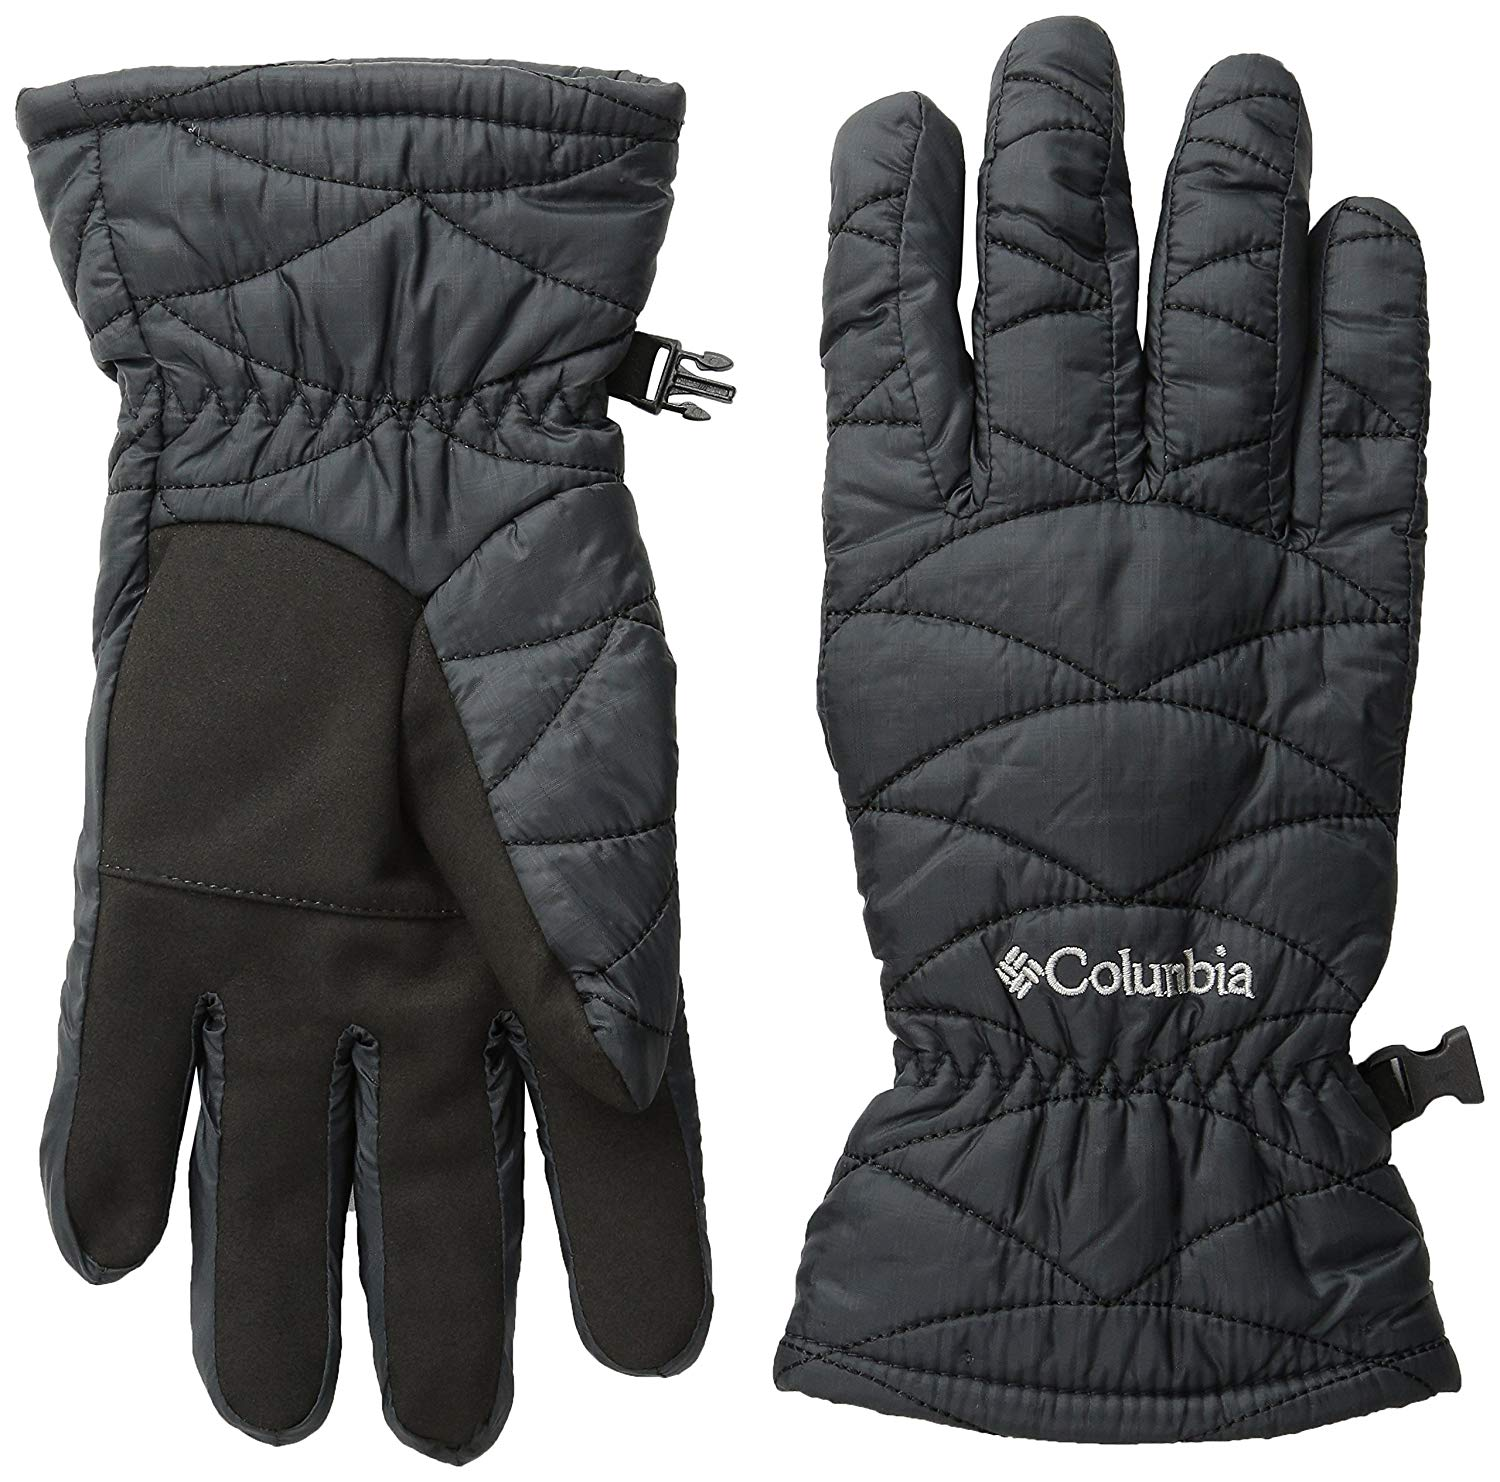 columbia_winter_gloves.jpg